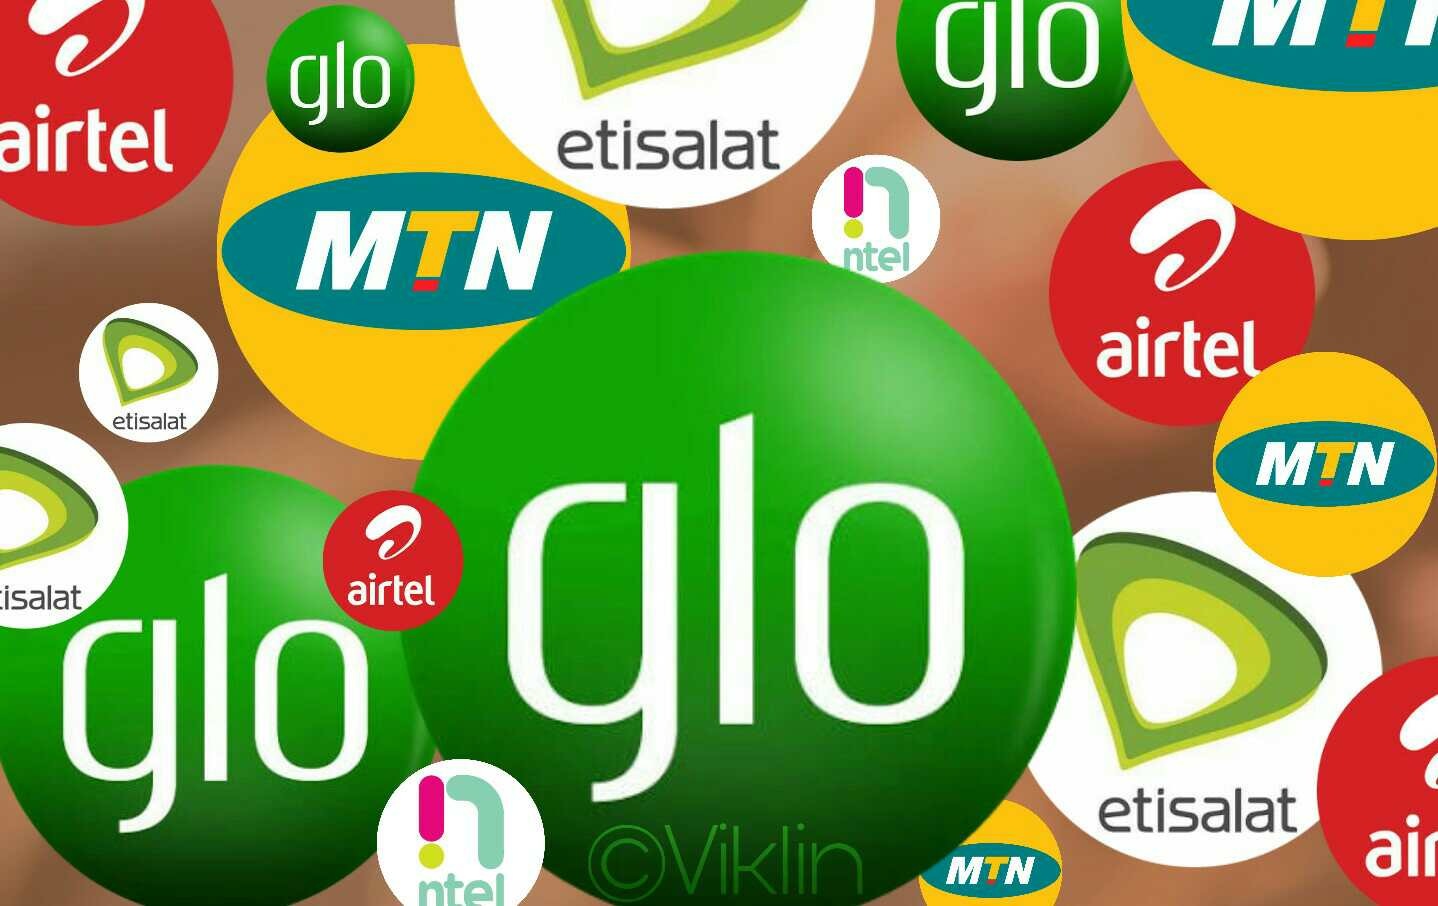 How to Borrow Airtime from Glo, MTN, 9Mobile & Airtel - Reviewcious